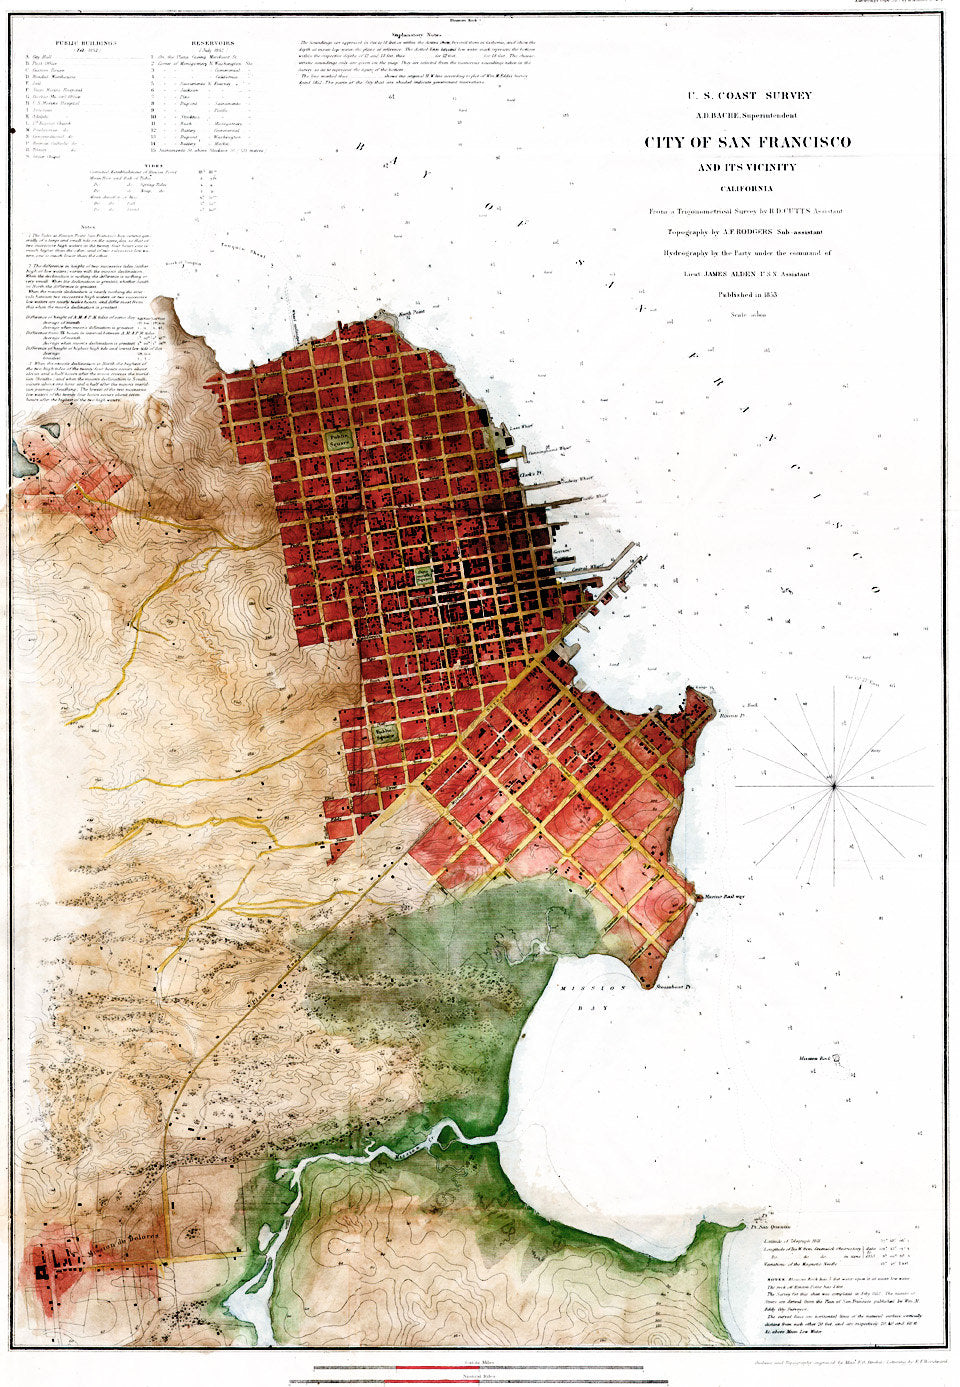 San Francisco California Map Art - ParMar Media - 1